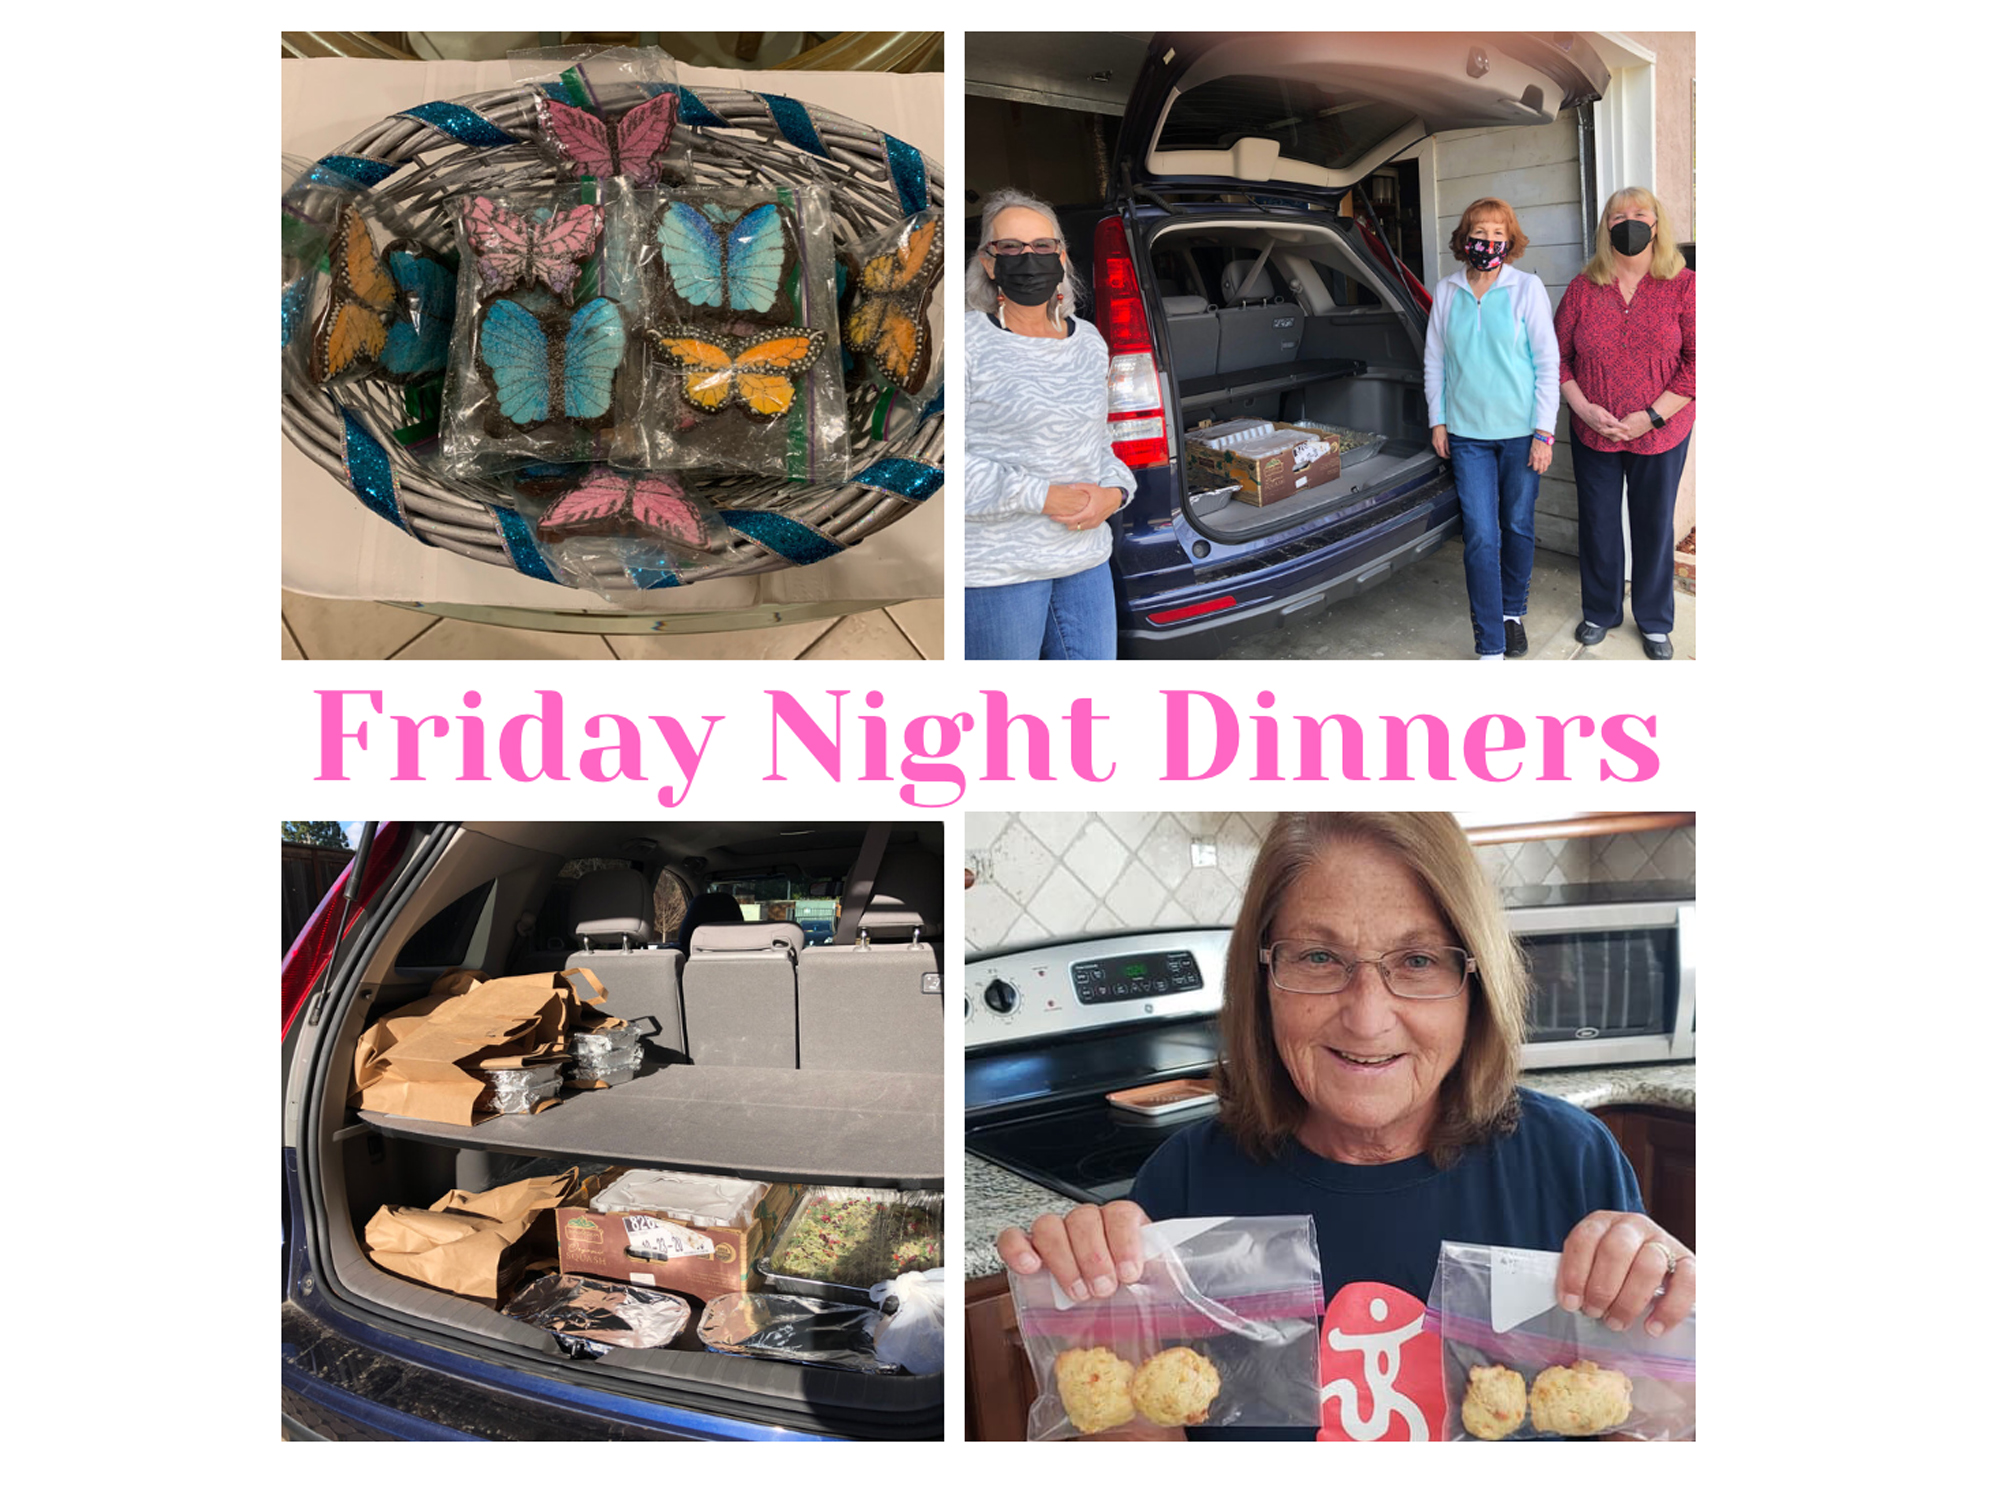 Delivering cookies and dinner to Family Supportive Housing